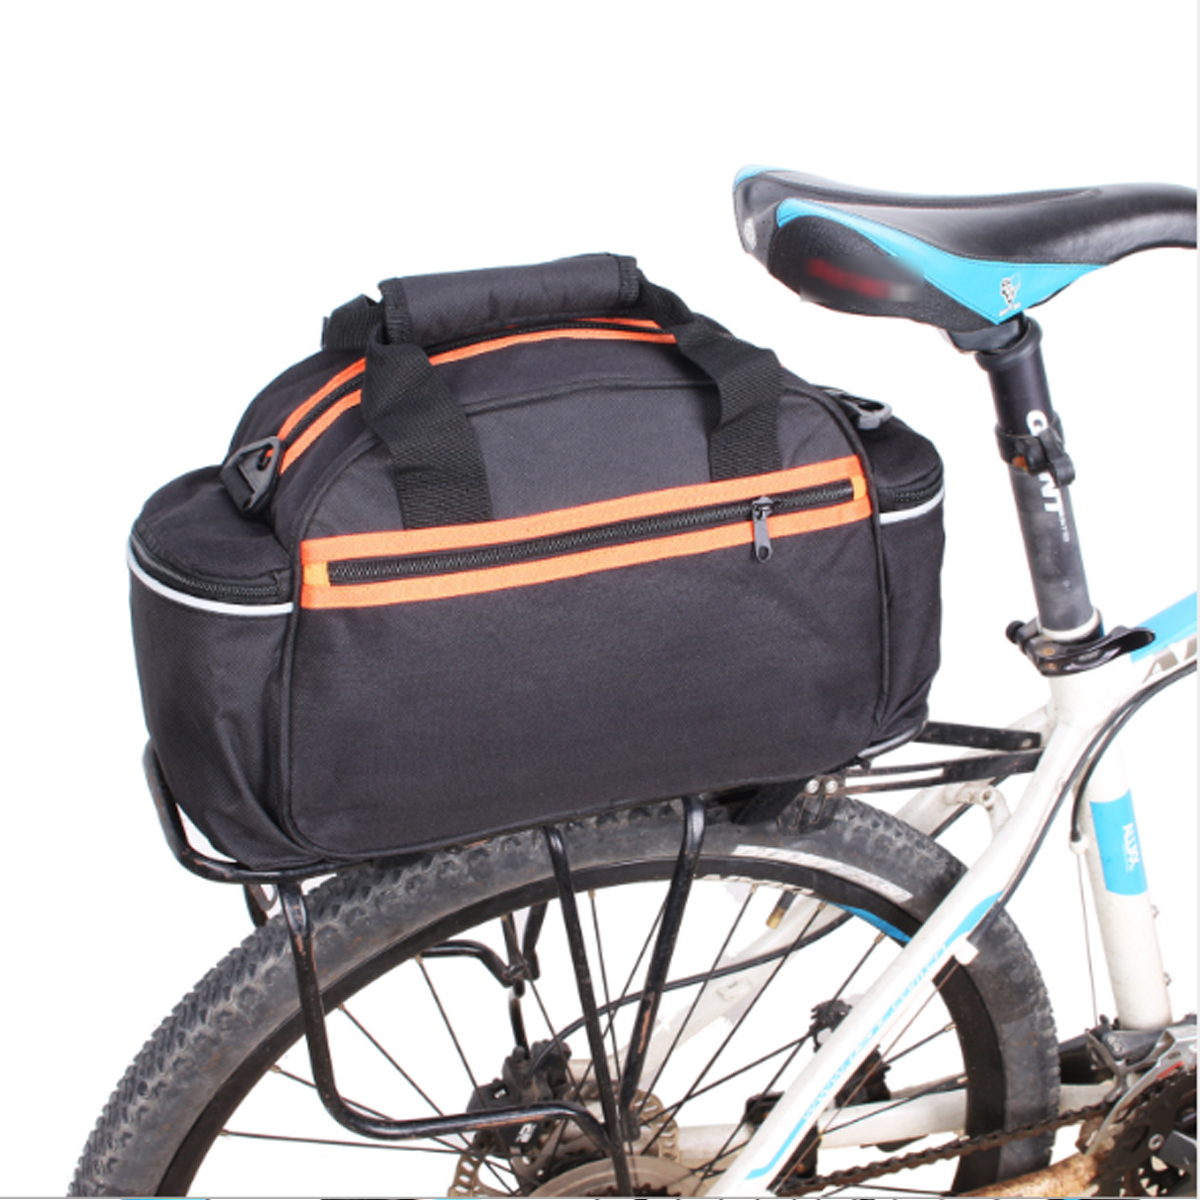 BIKIGHT 14L Bicycle Bag Bike Rear Pannier Seat Rack Bag